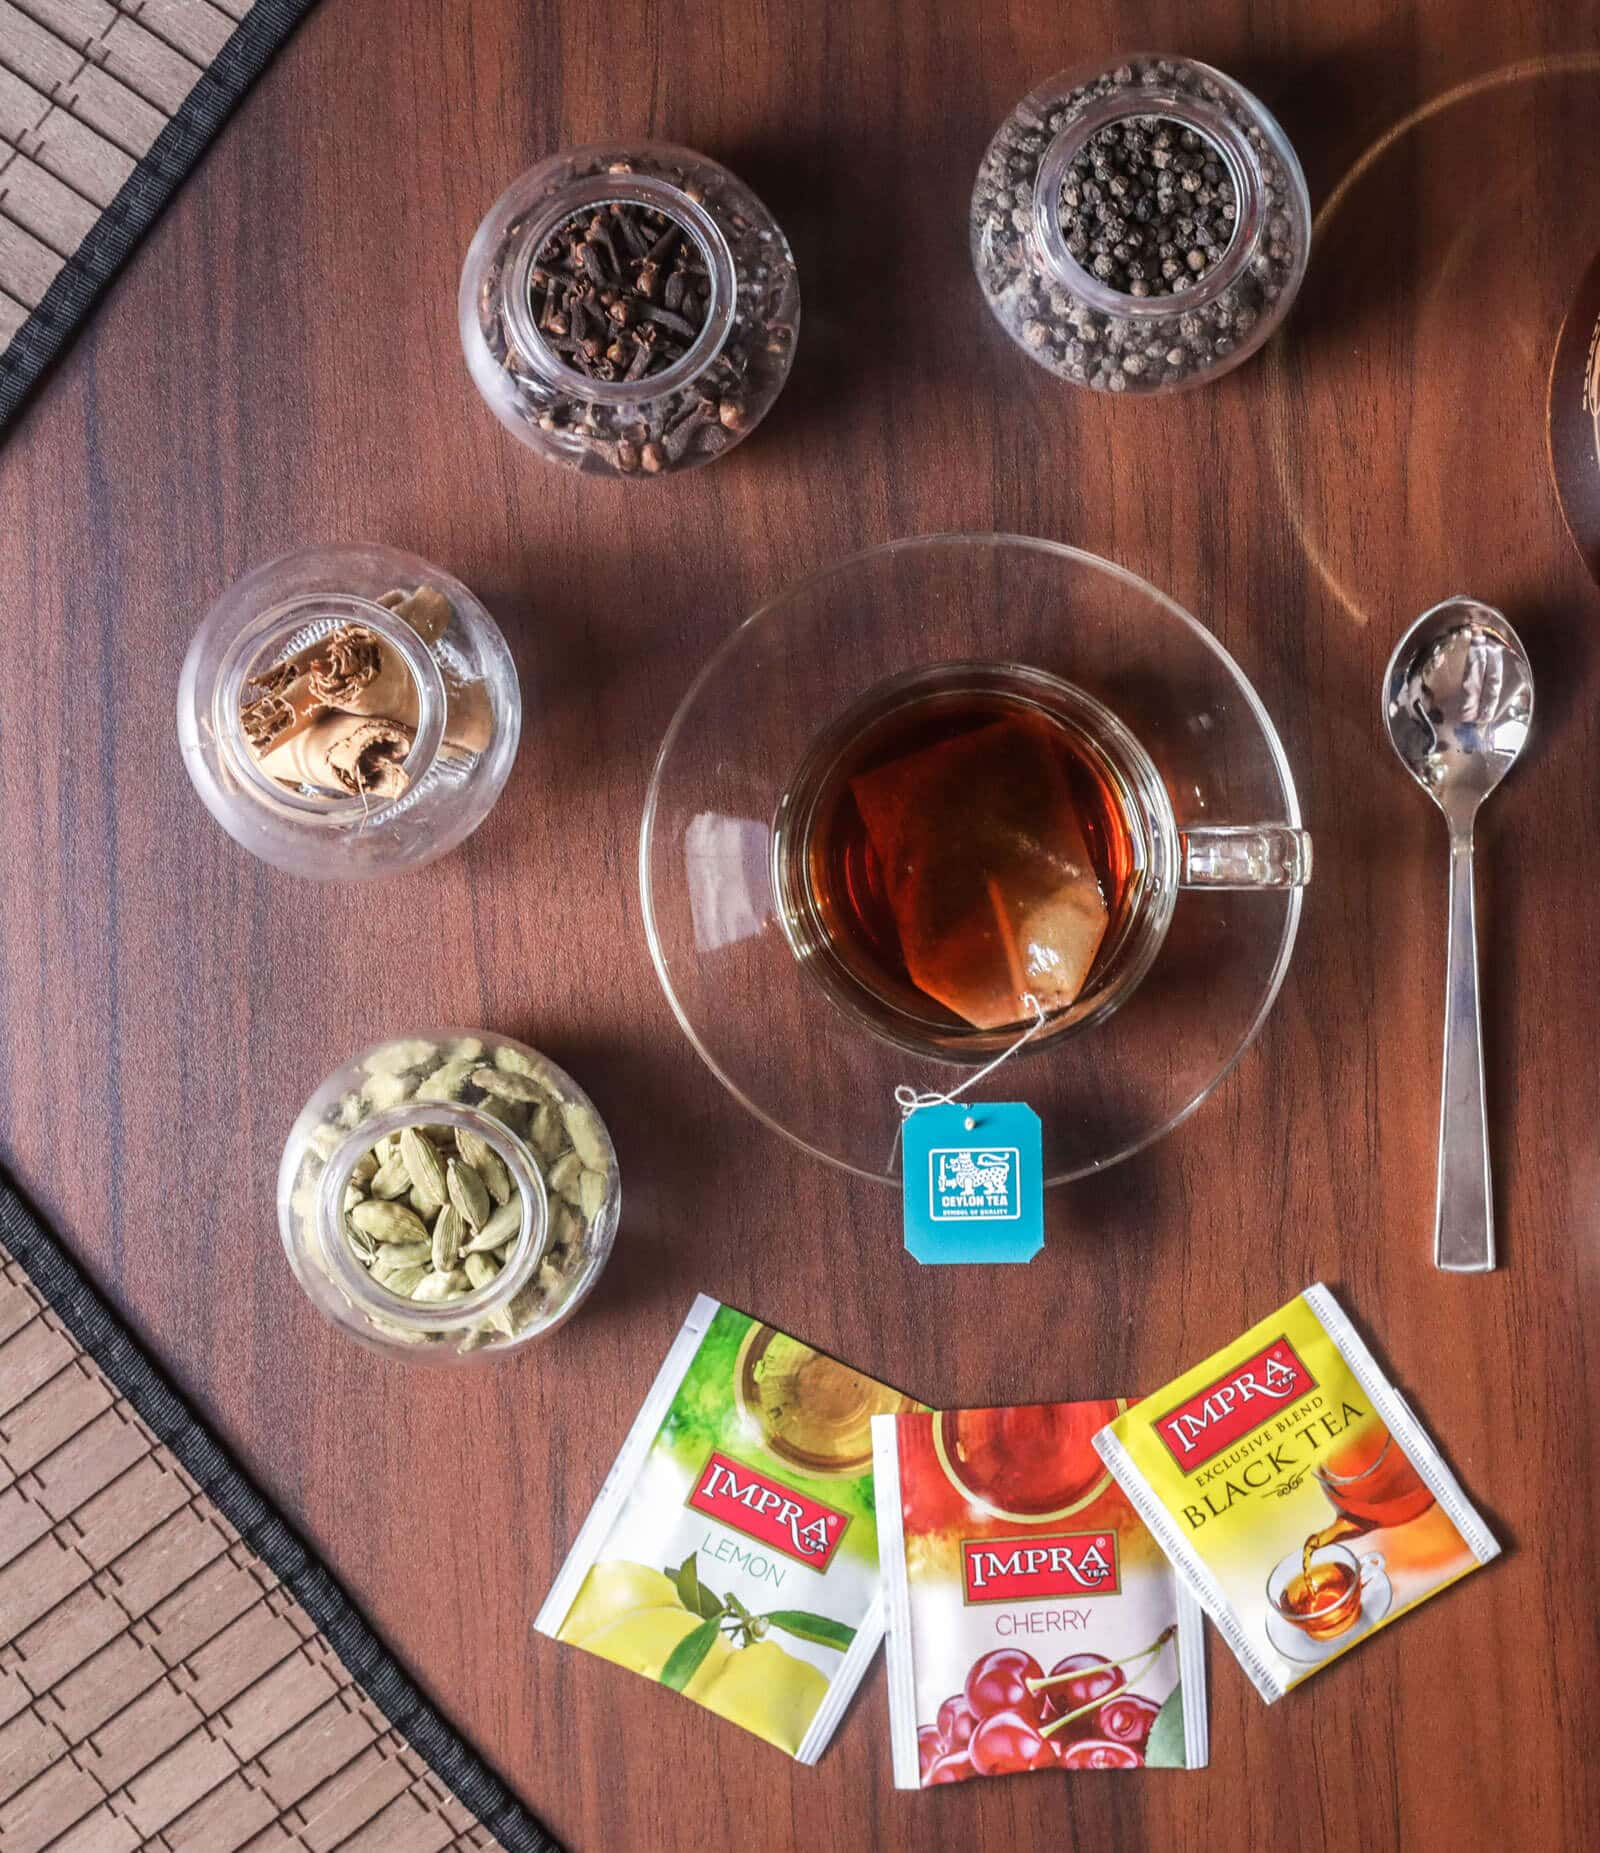 Imperial Teas Group Impra Tea